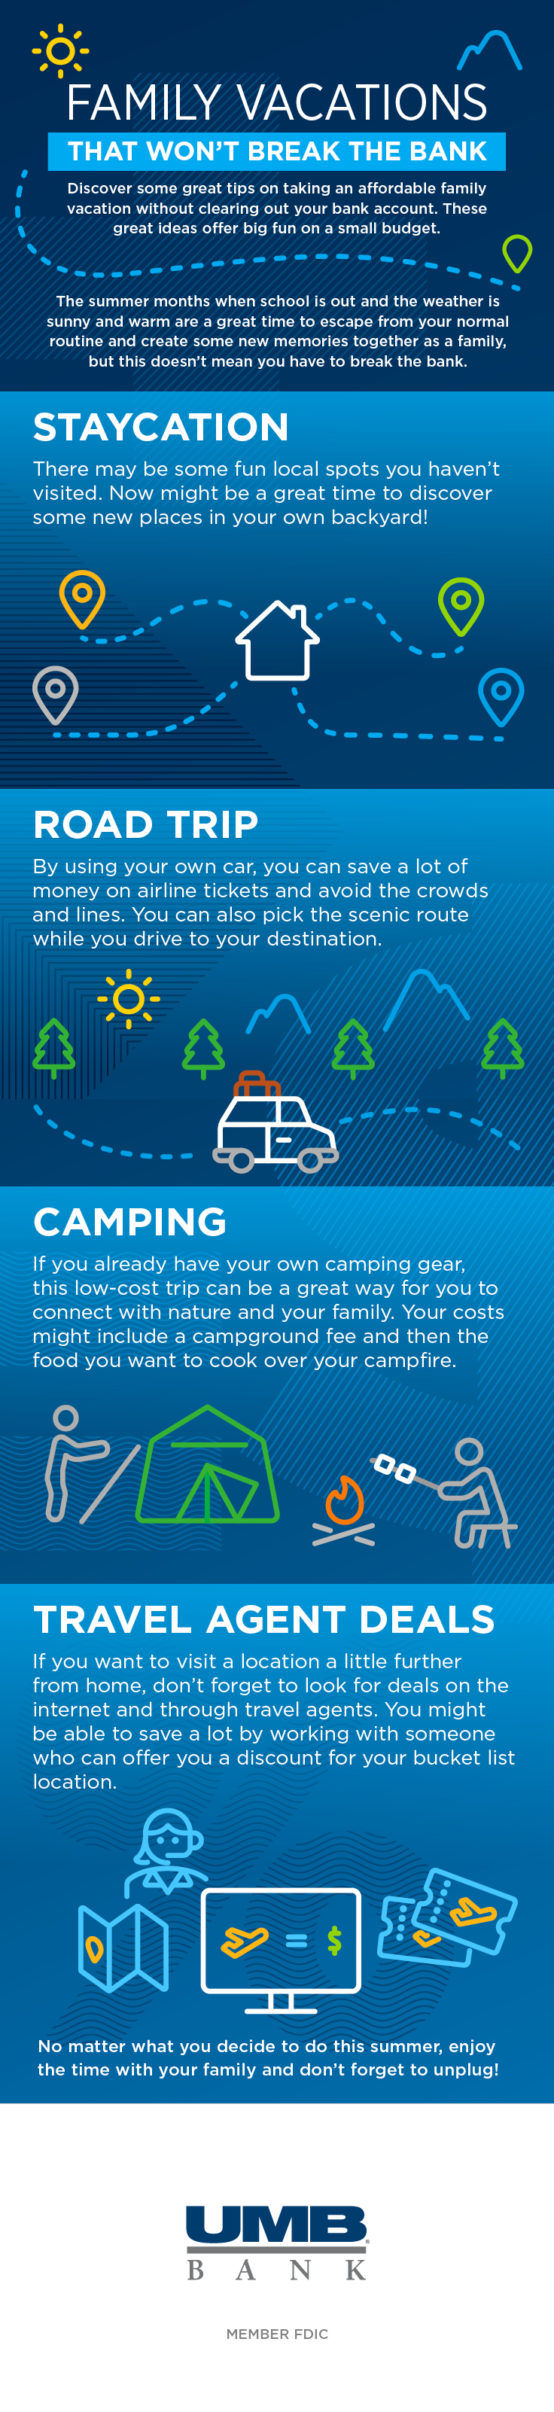 CONS Infographic FamilyVacations countercard BLOG